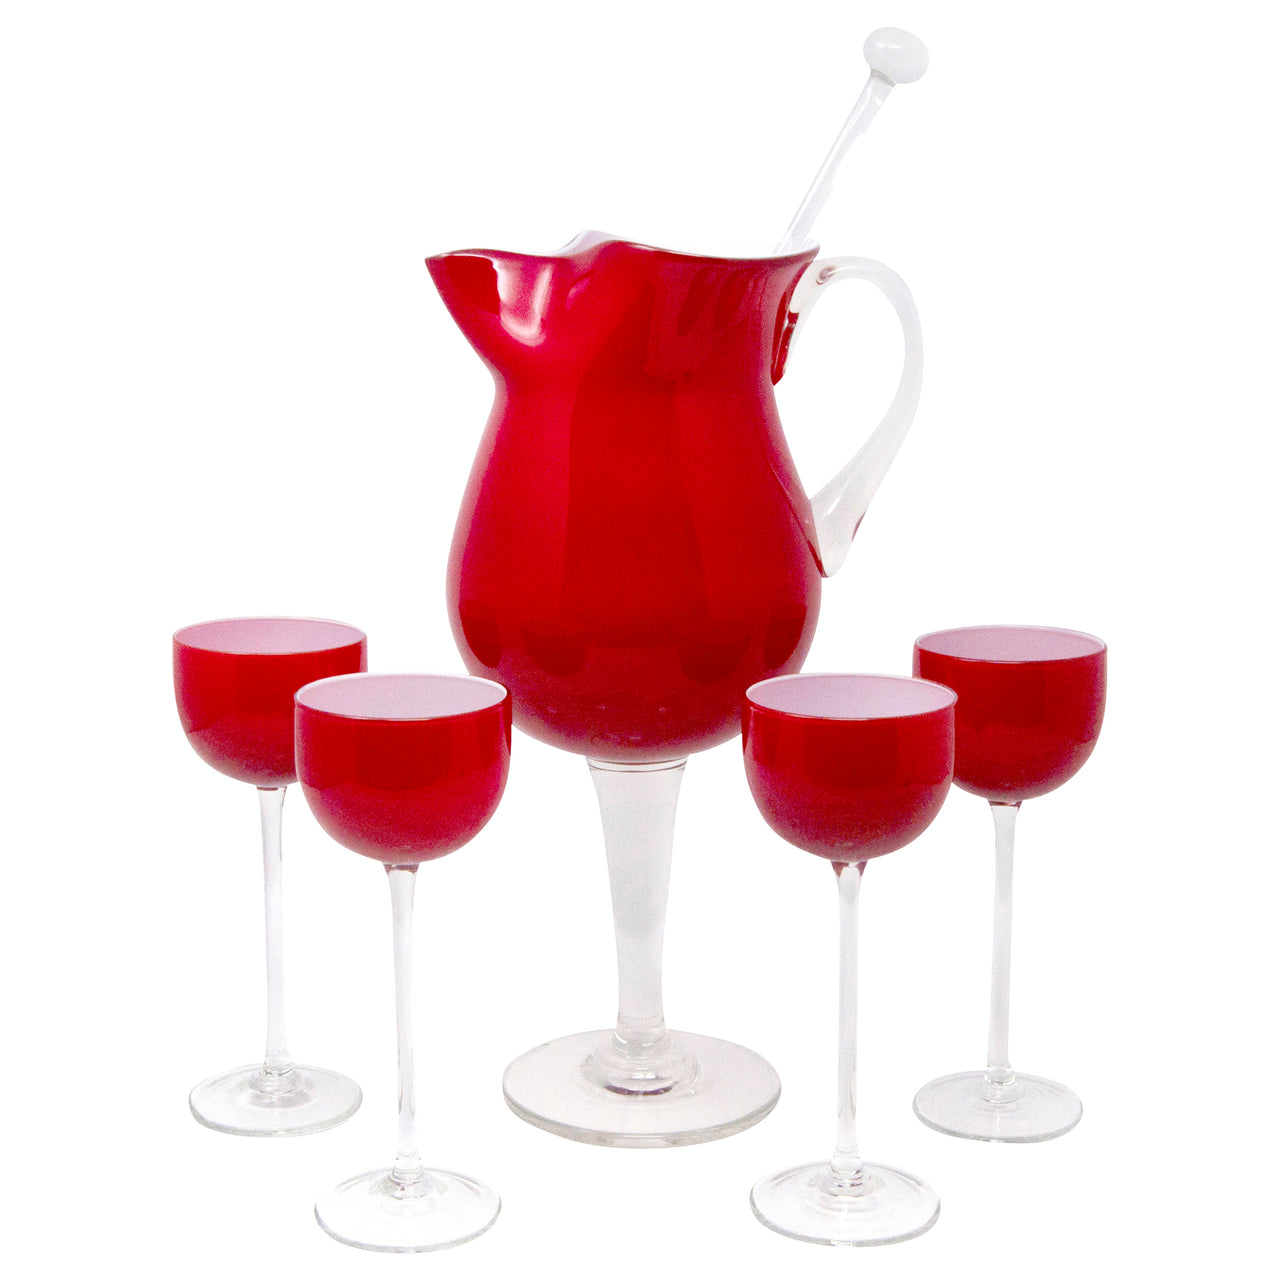 Vintage Carlo Moretti Red Cased Glass Cocktail Pitcher Set | The Hour Shop